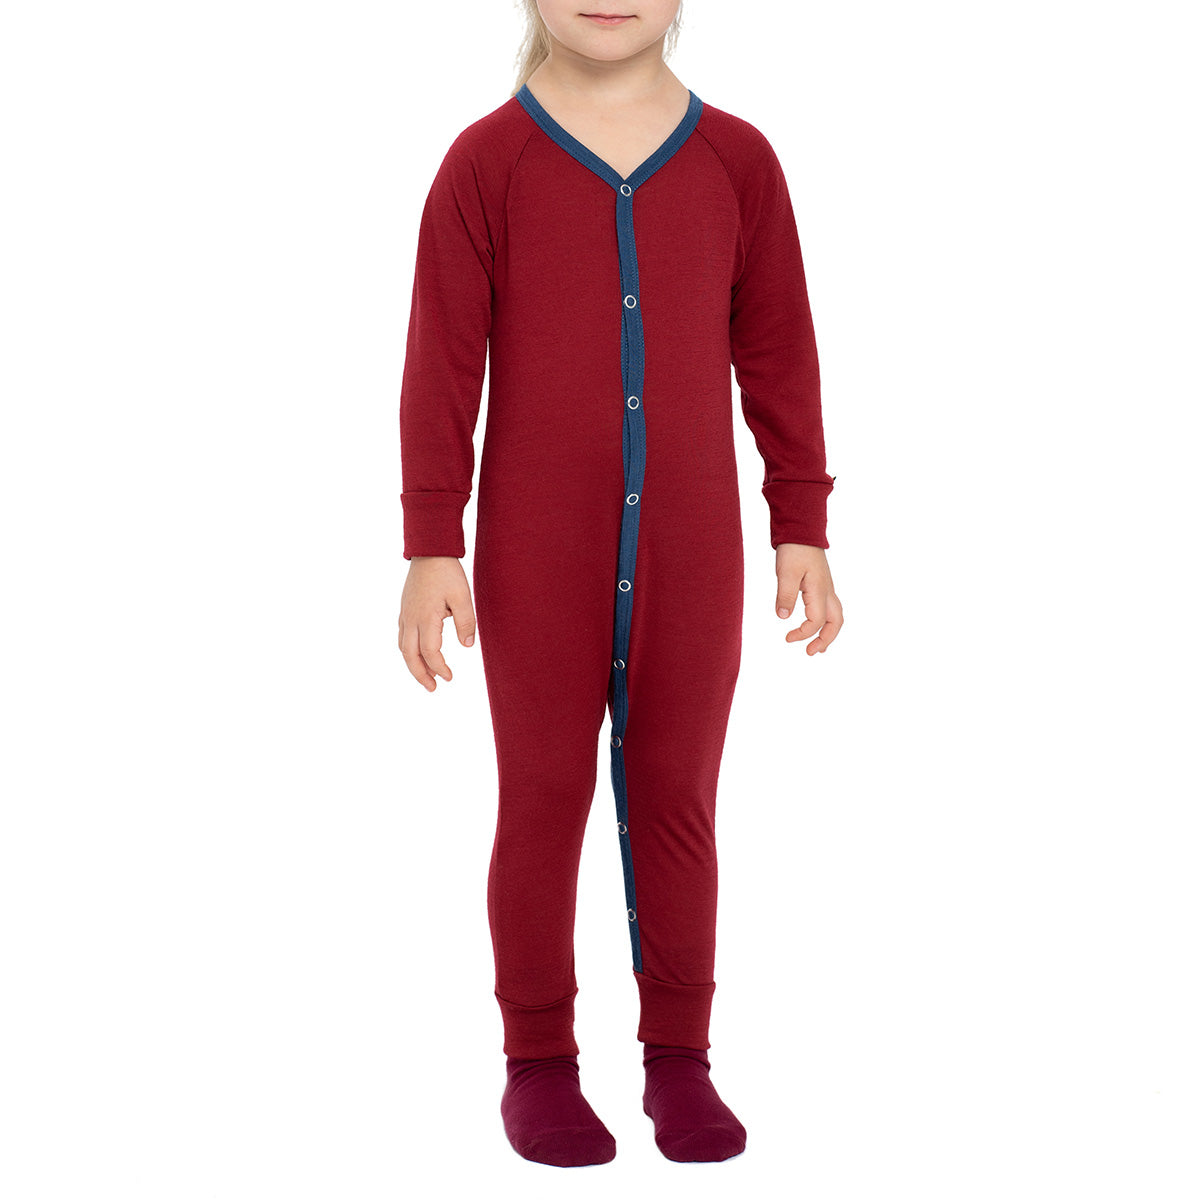 menique 	Kids' Merino 160 Romper Royal Cherry Color